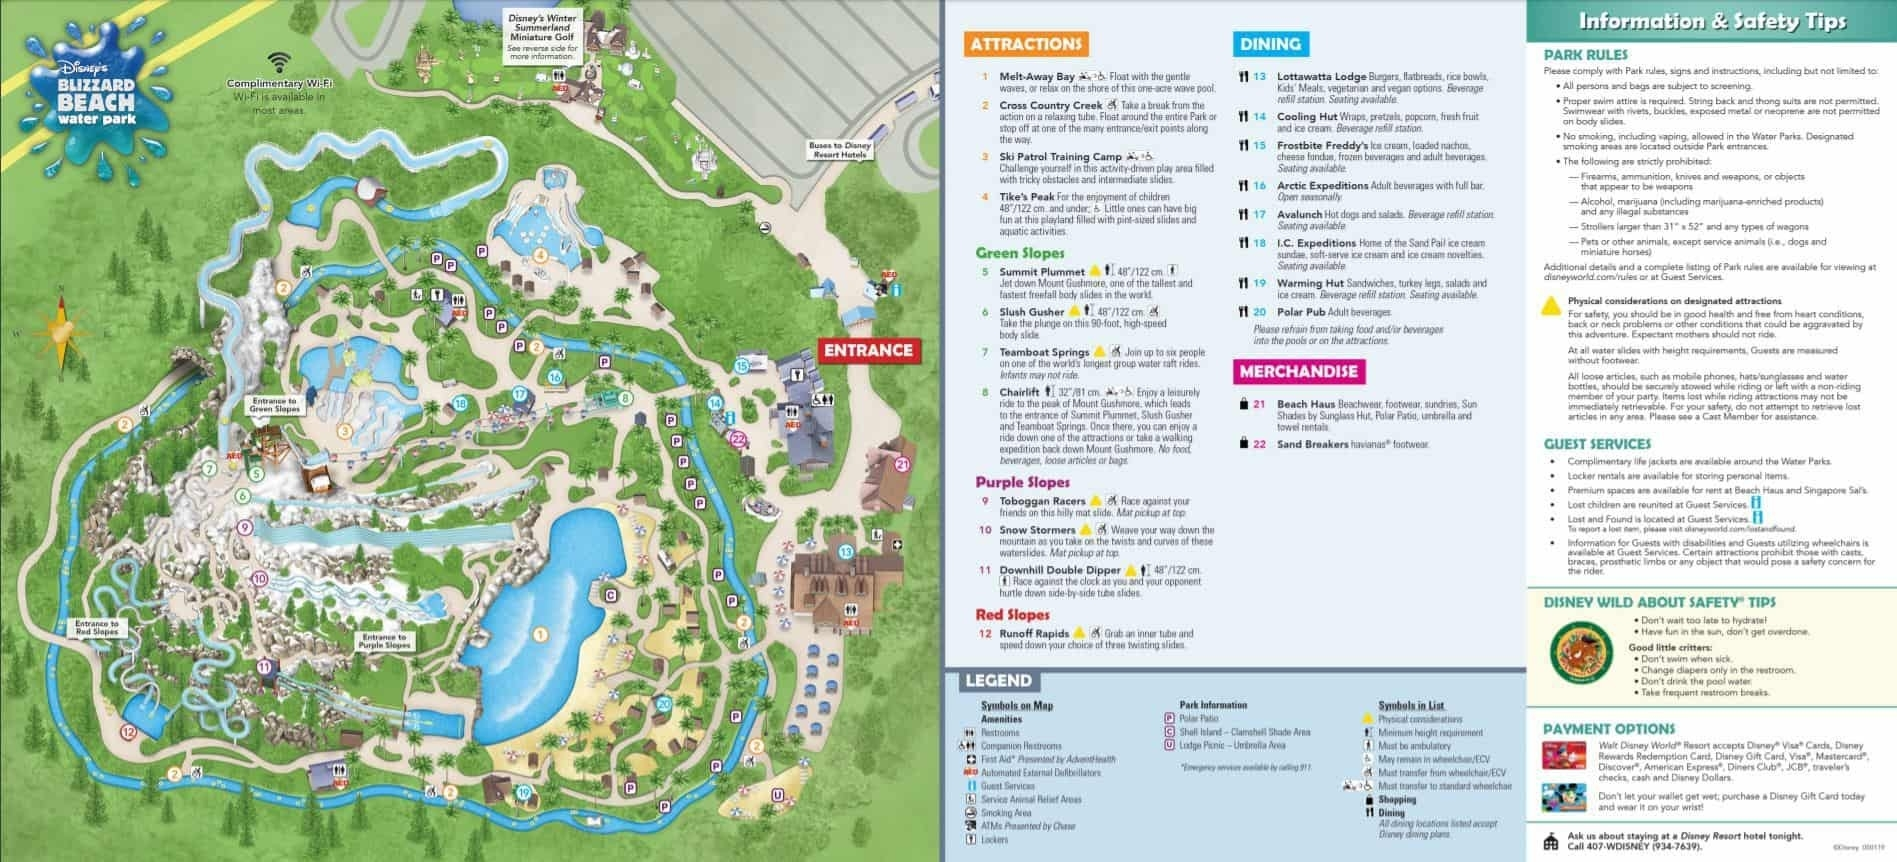 Disney World Maps - Download For The Parks, Resorts, Parties  Disney World Attractions Printable List 2020